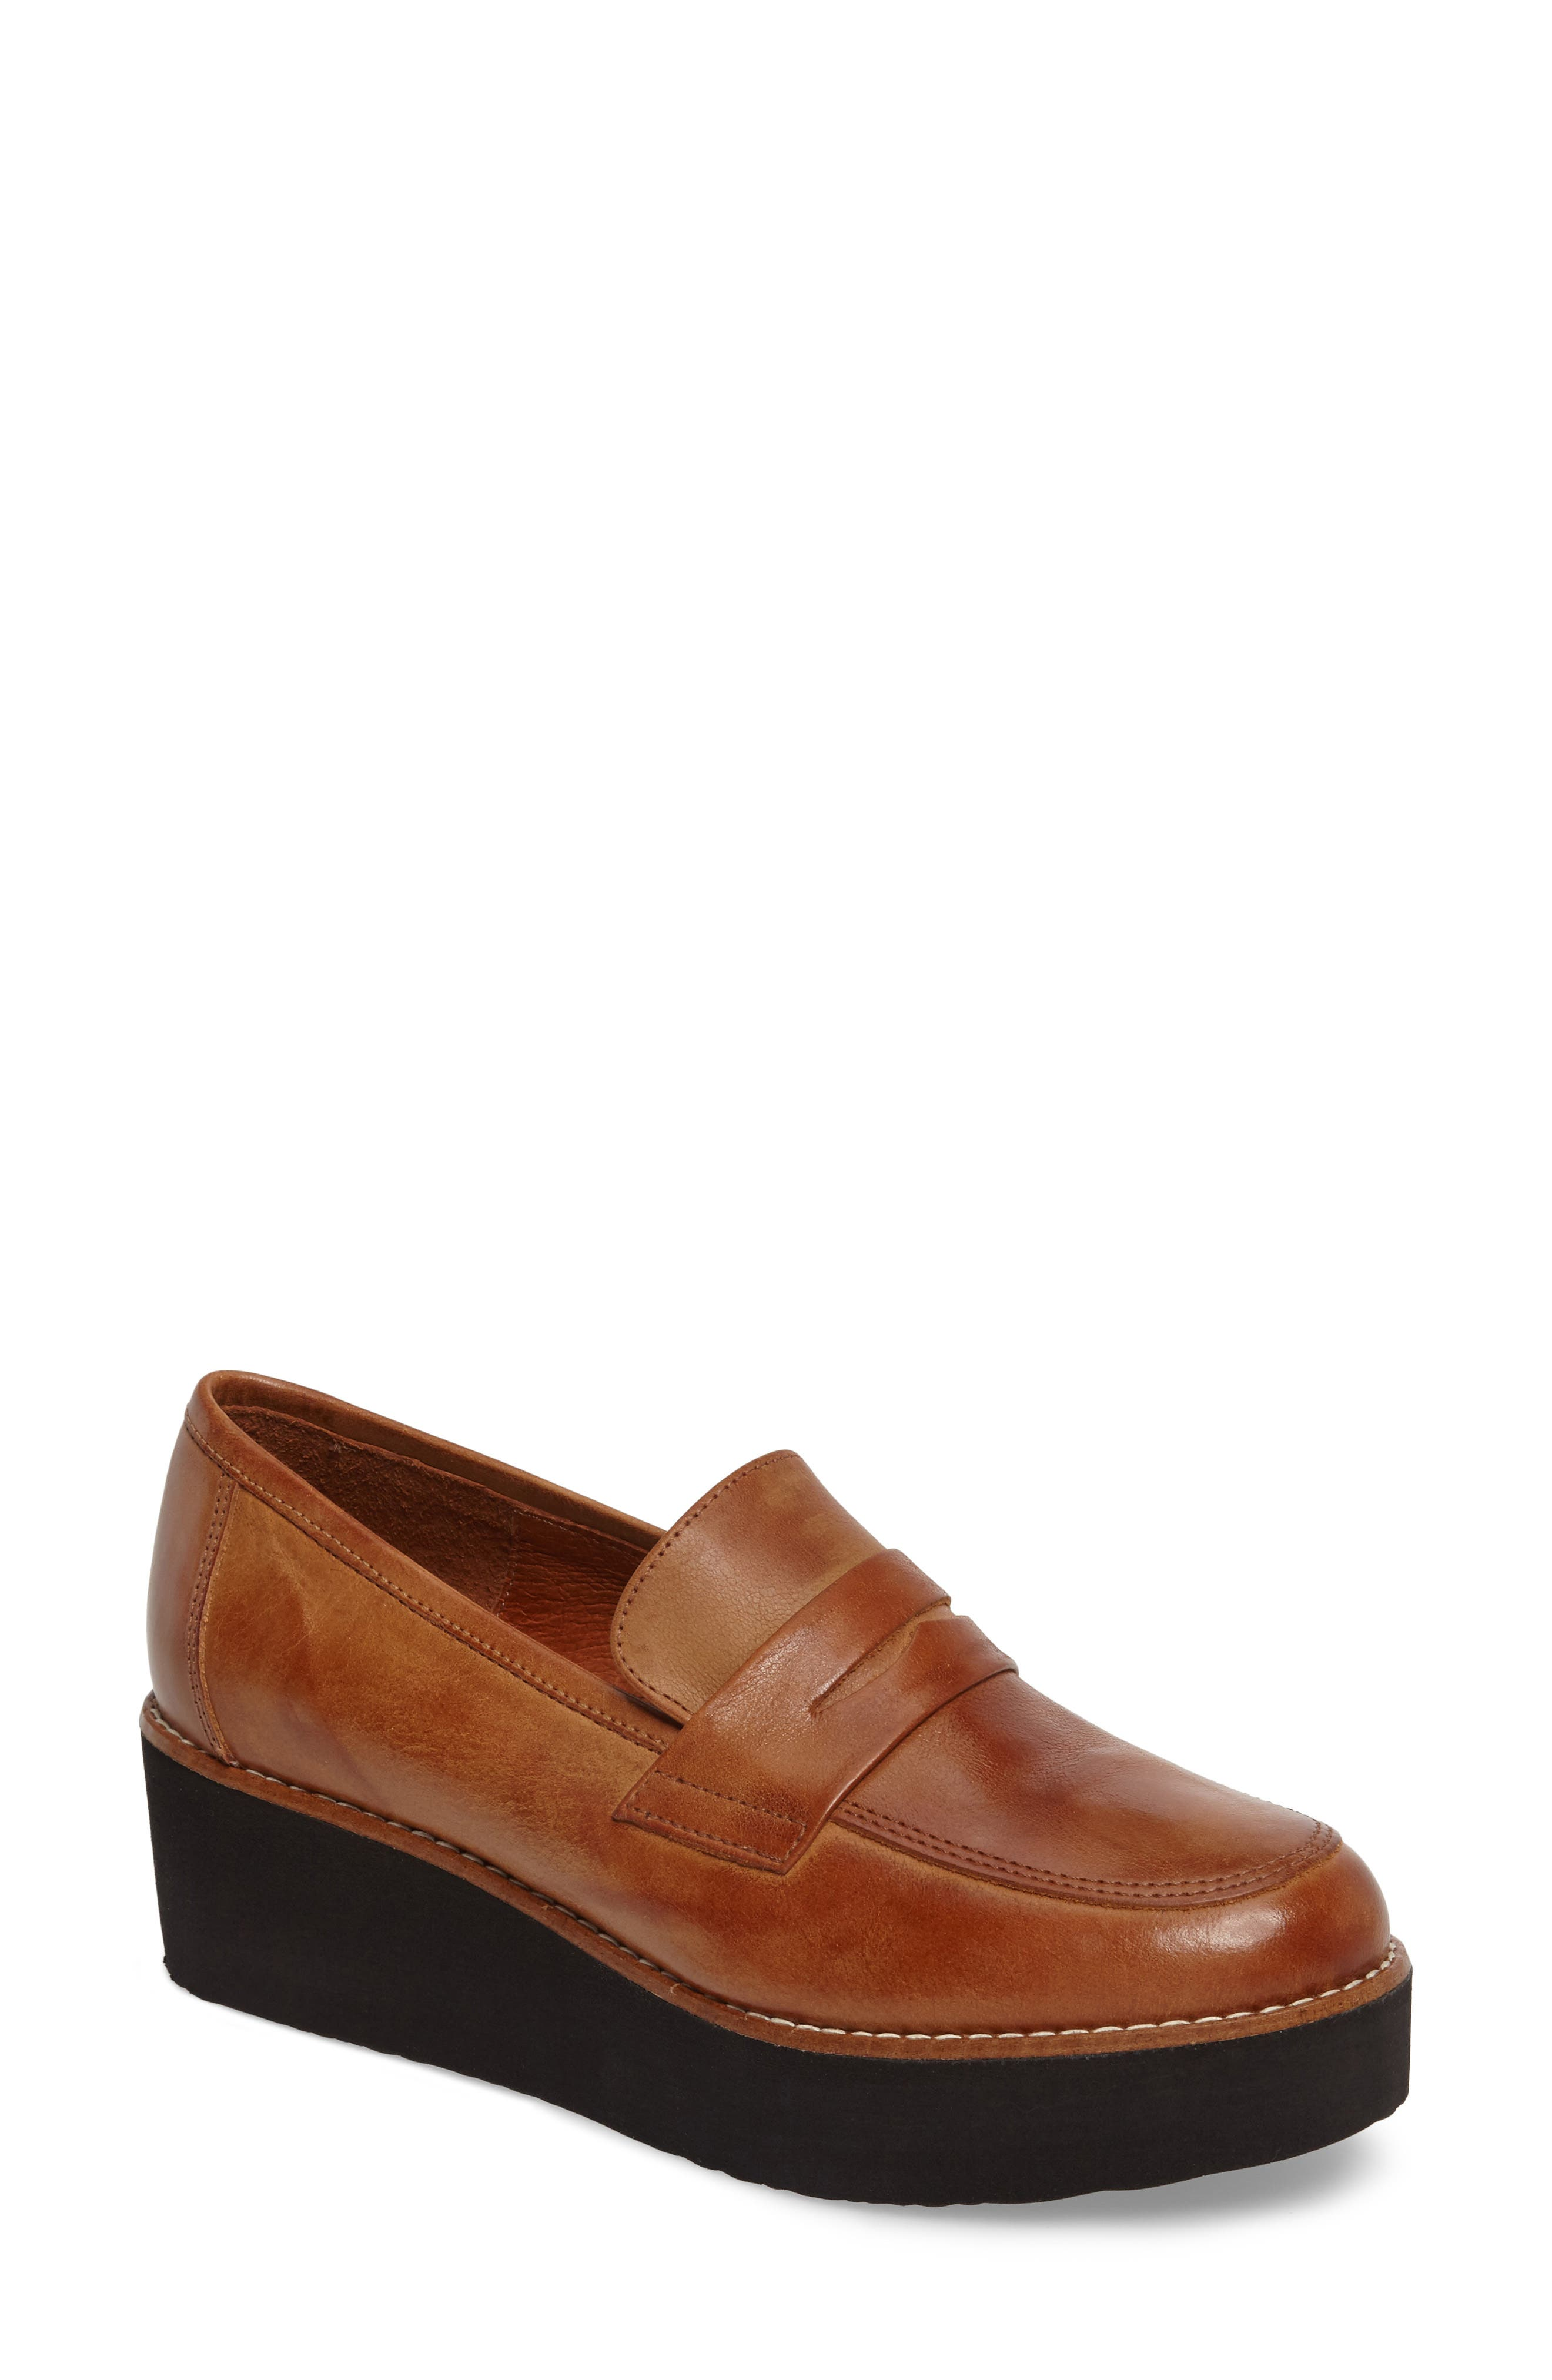 Alternate Image 1 Selected - Chocolat Blu Santiago Platform Penny Loafer (Women)